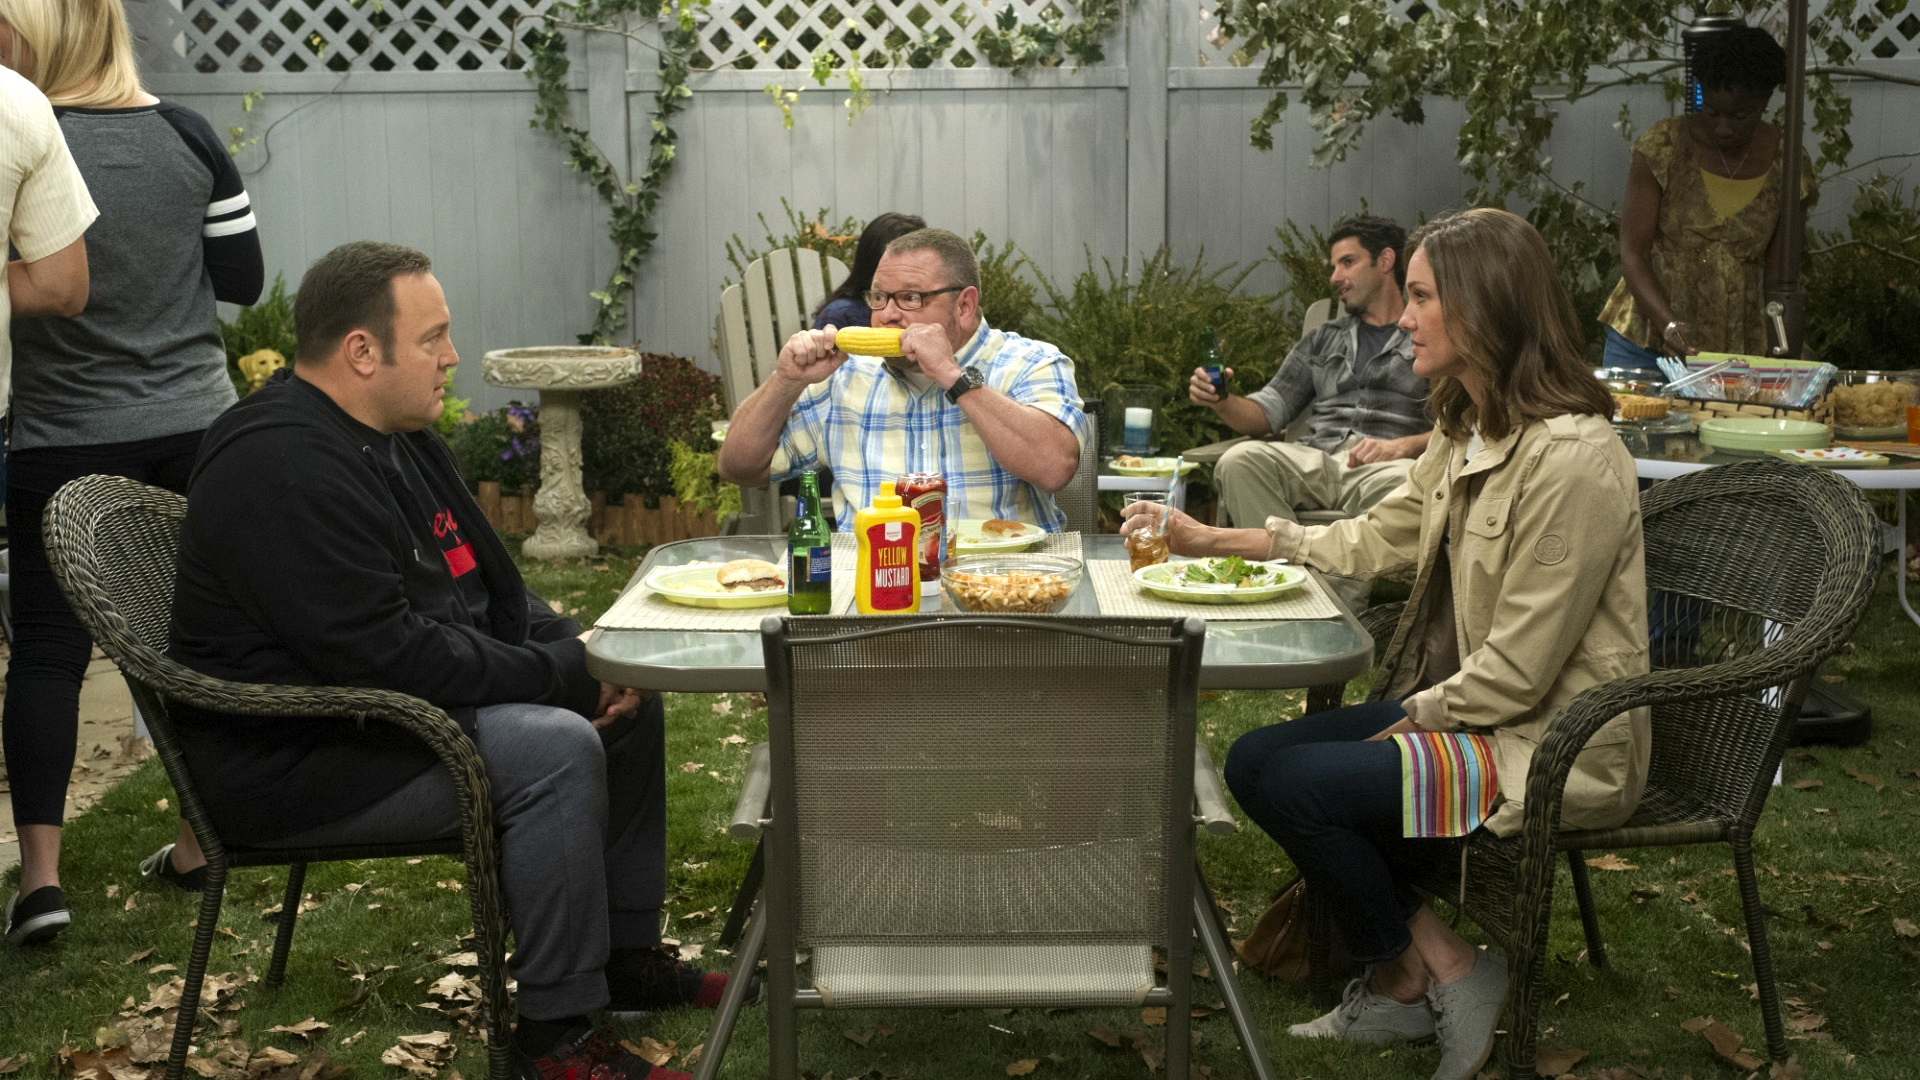 Kevin and Donna attend a barbecue.